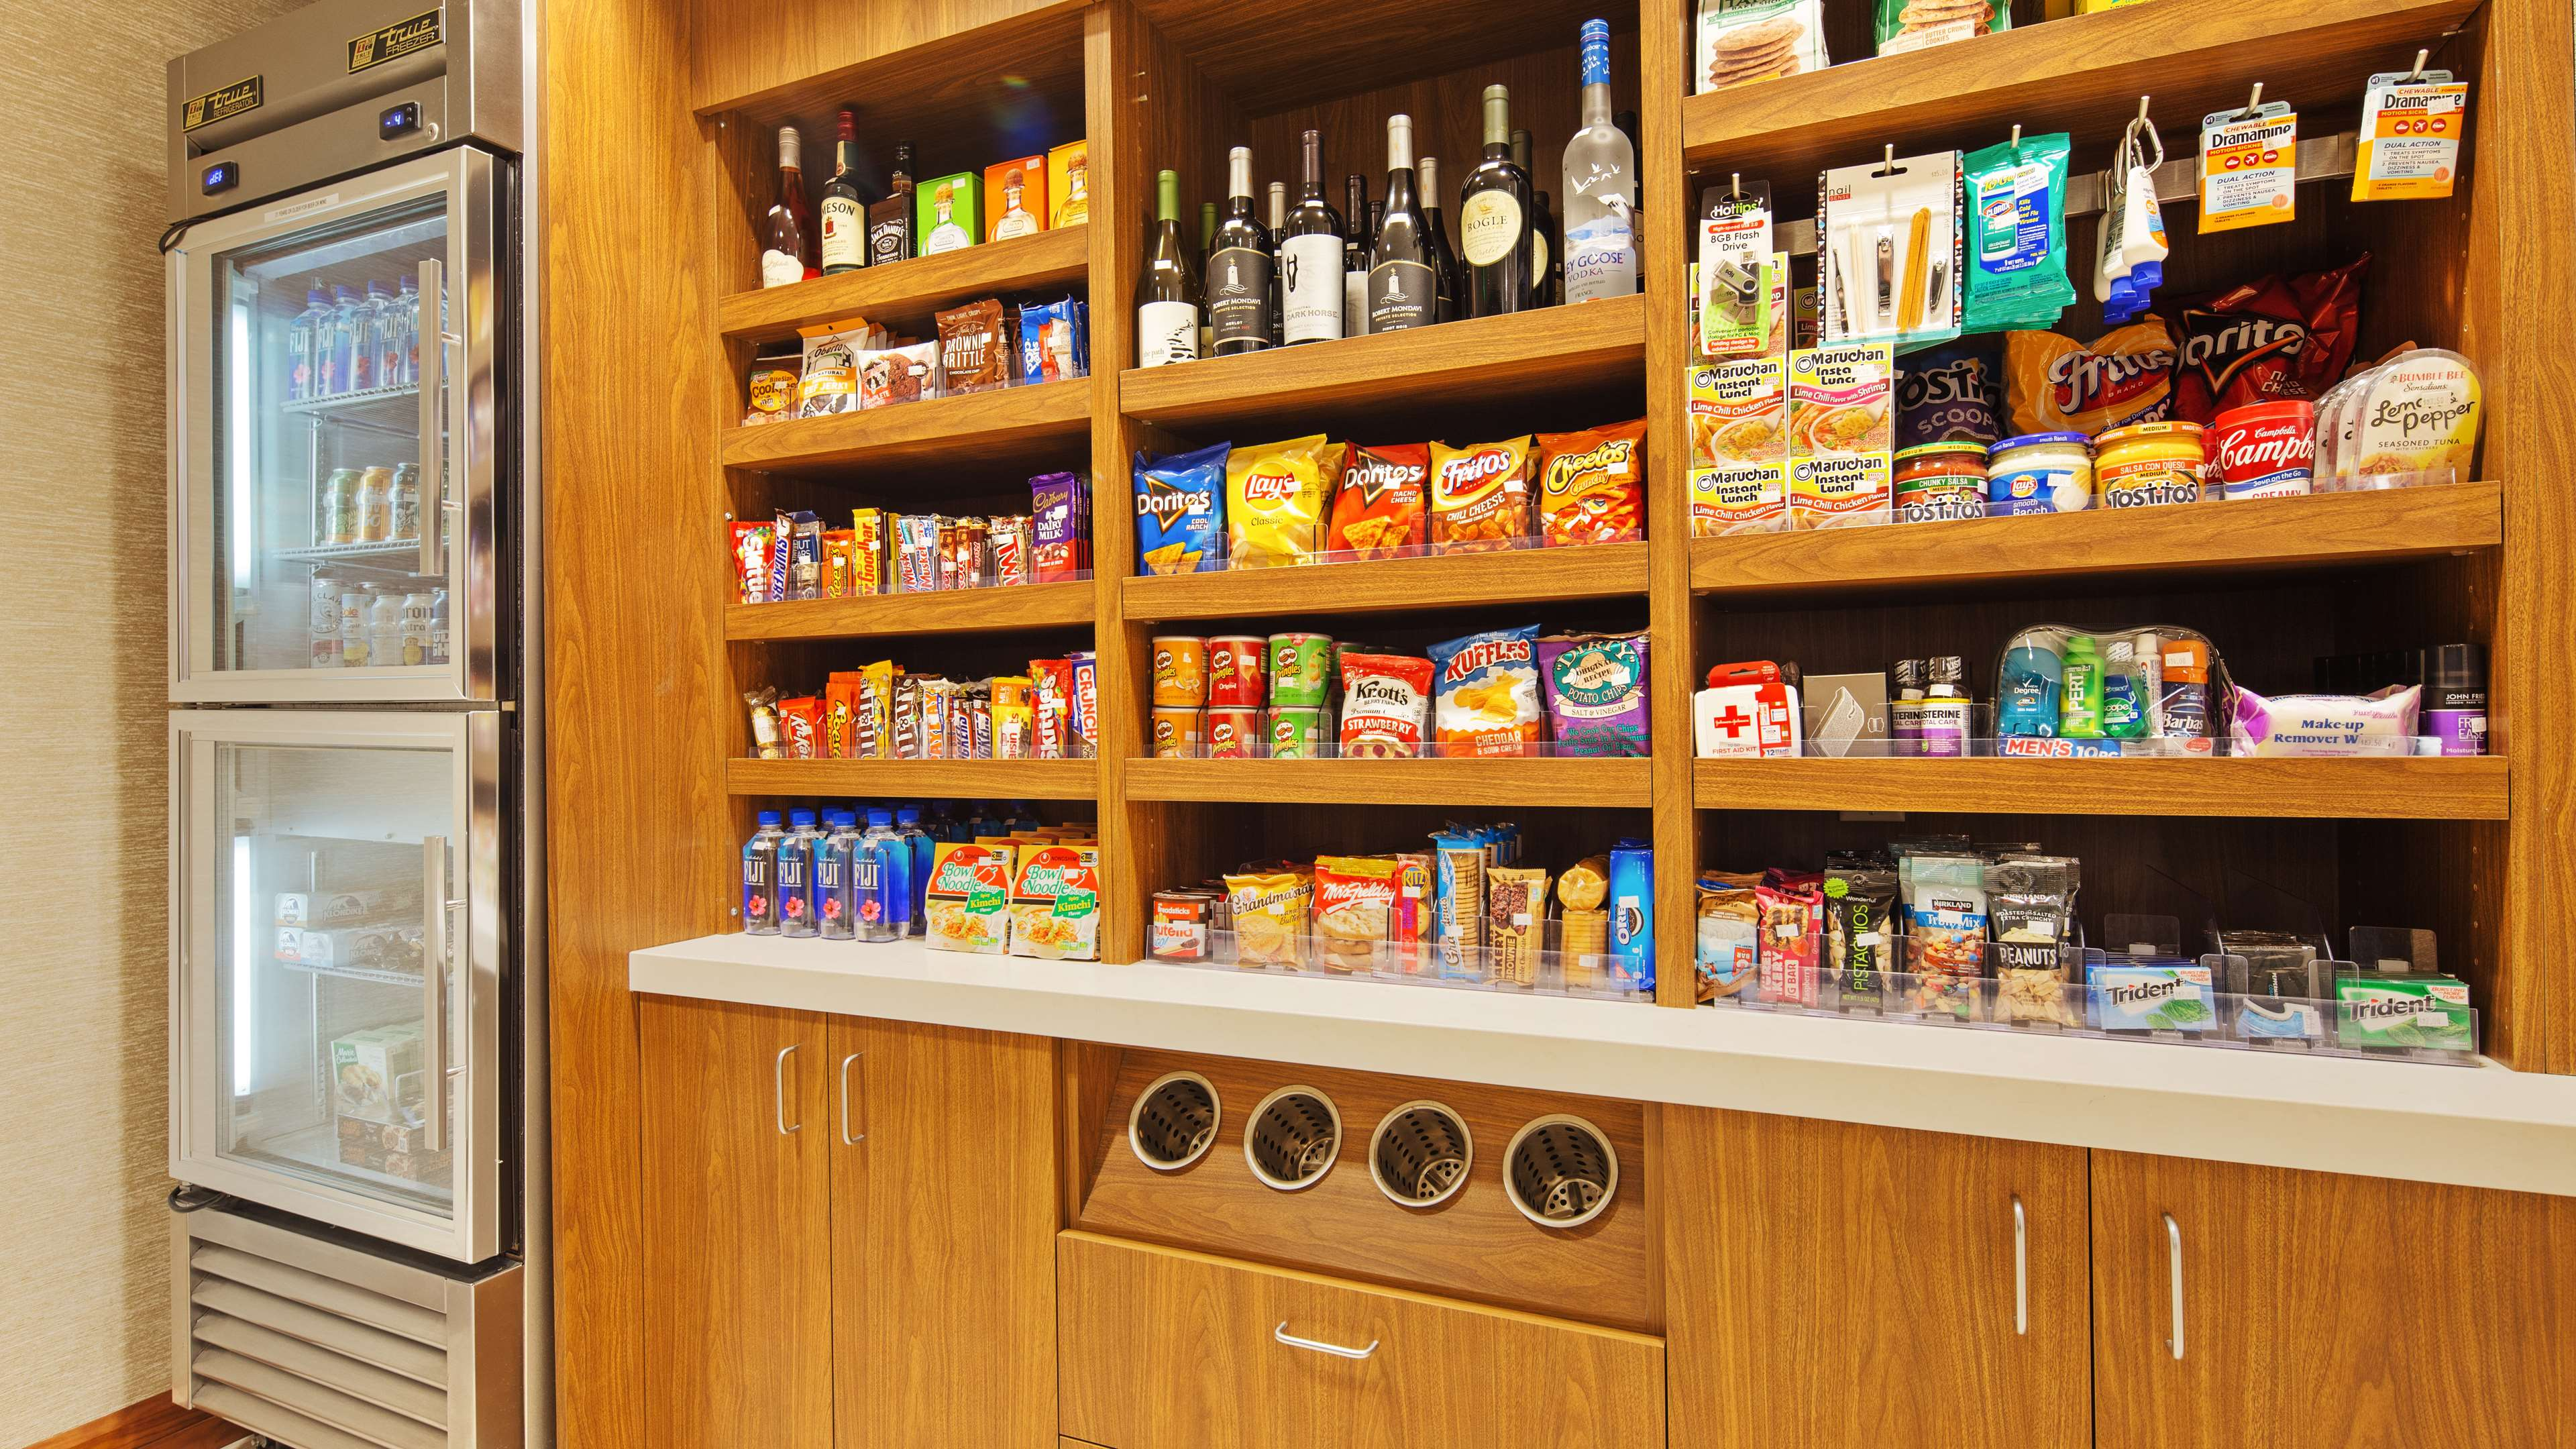 Sundries - Snacks and other necessities